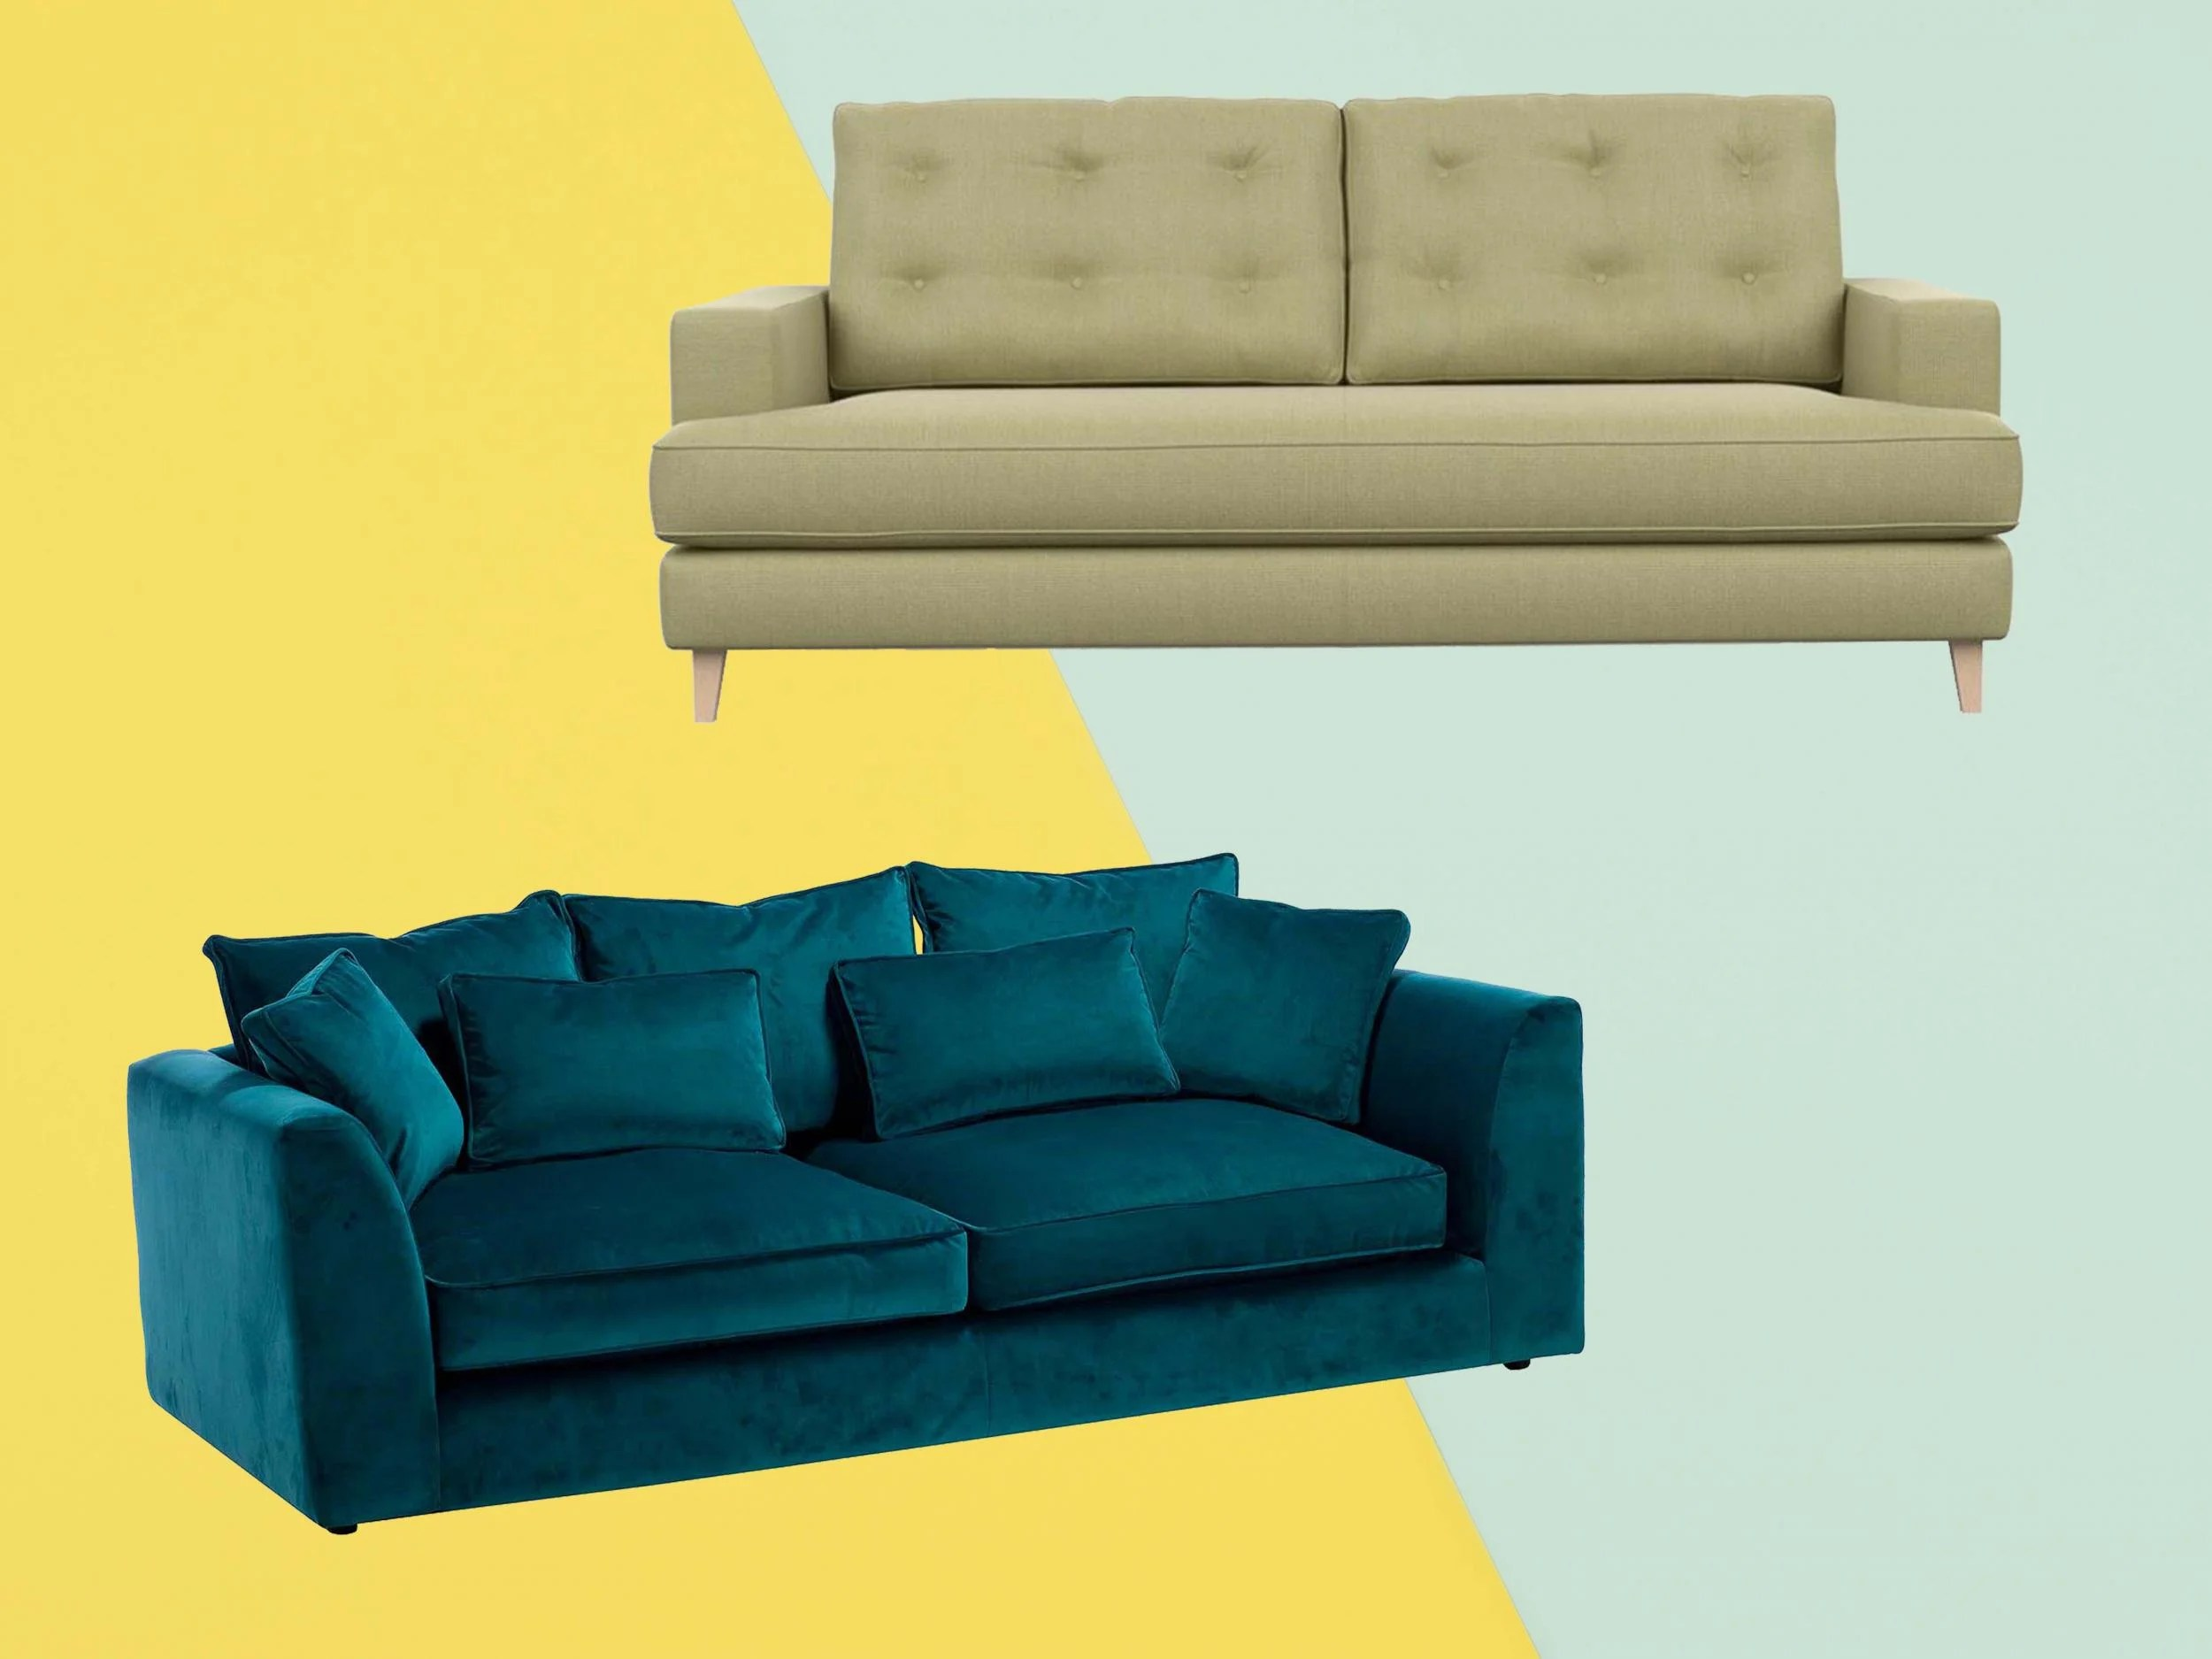 Habitat Sofa 10 Best Sofas The Independent